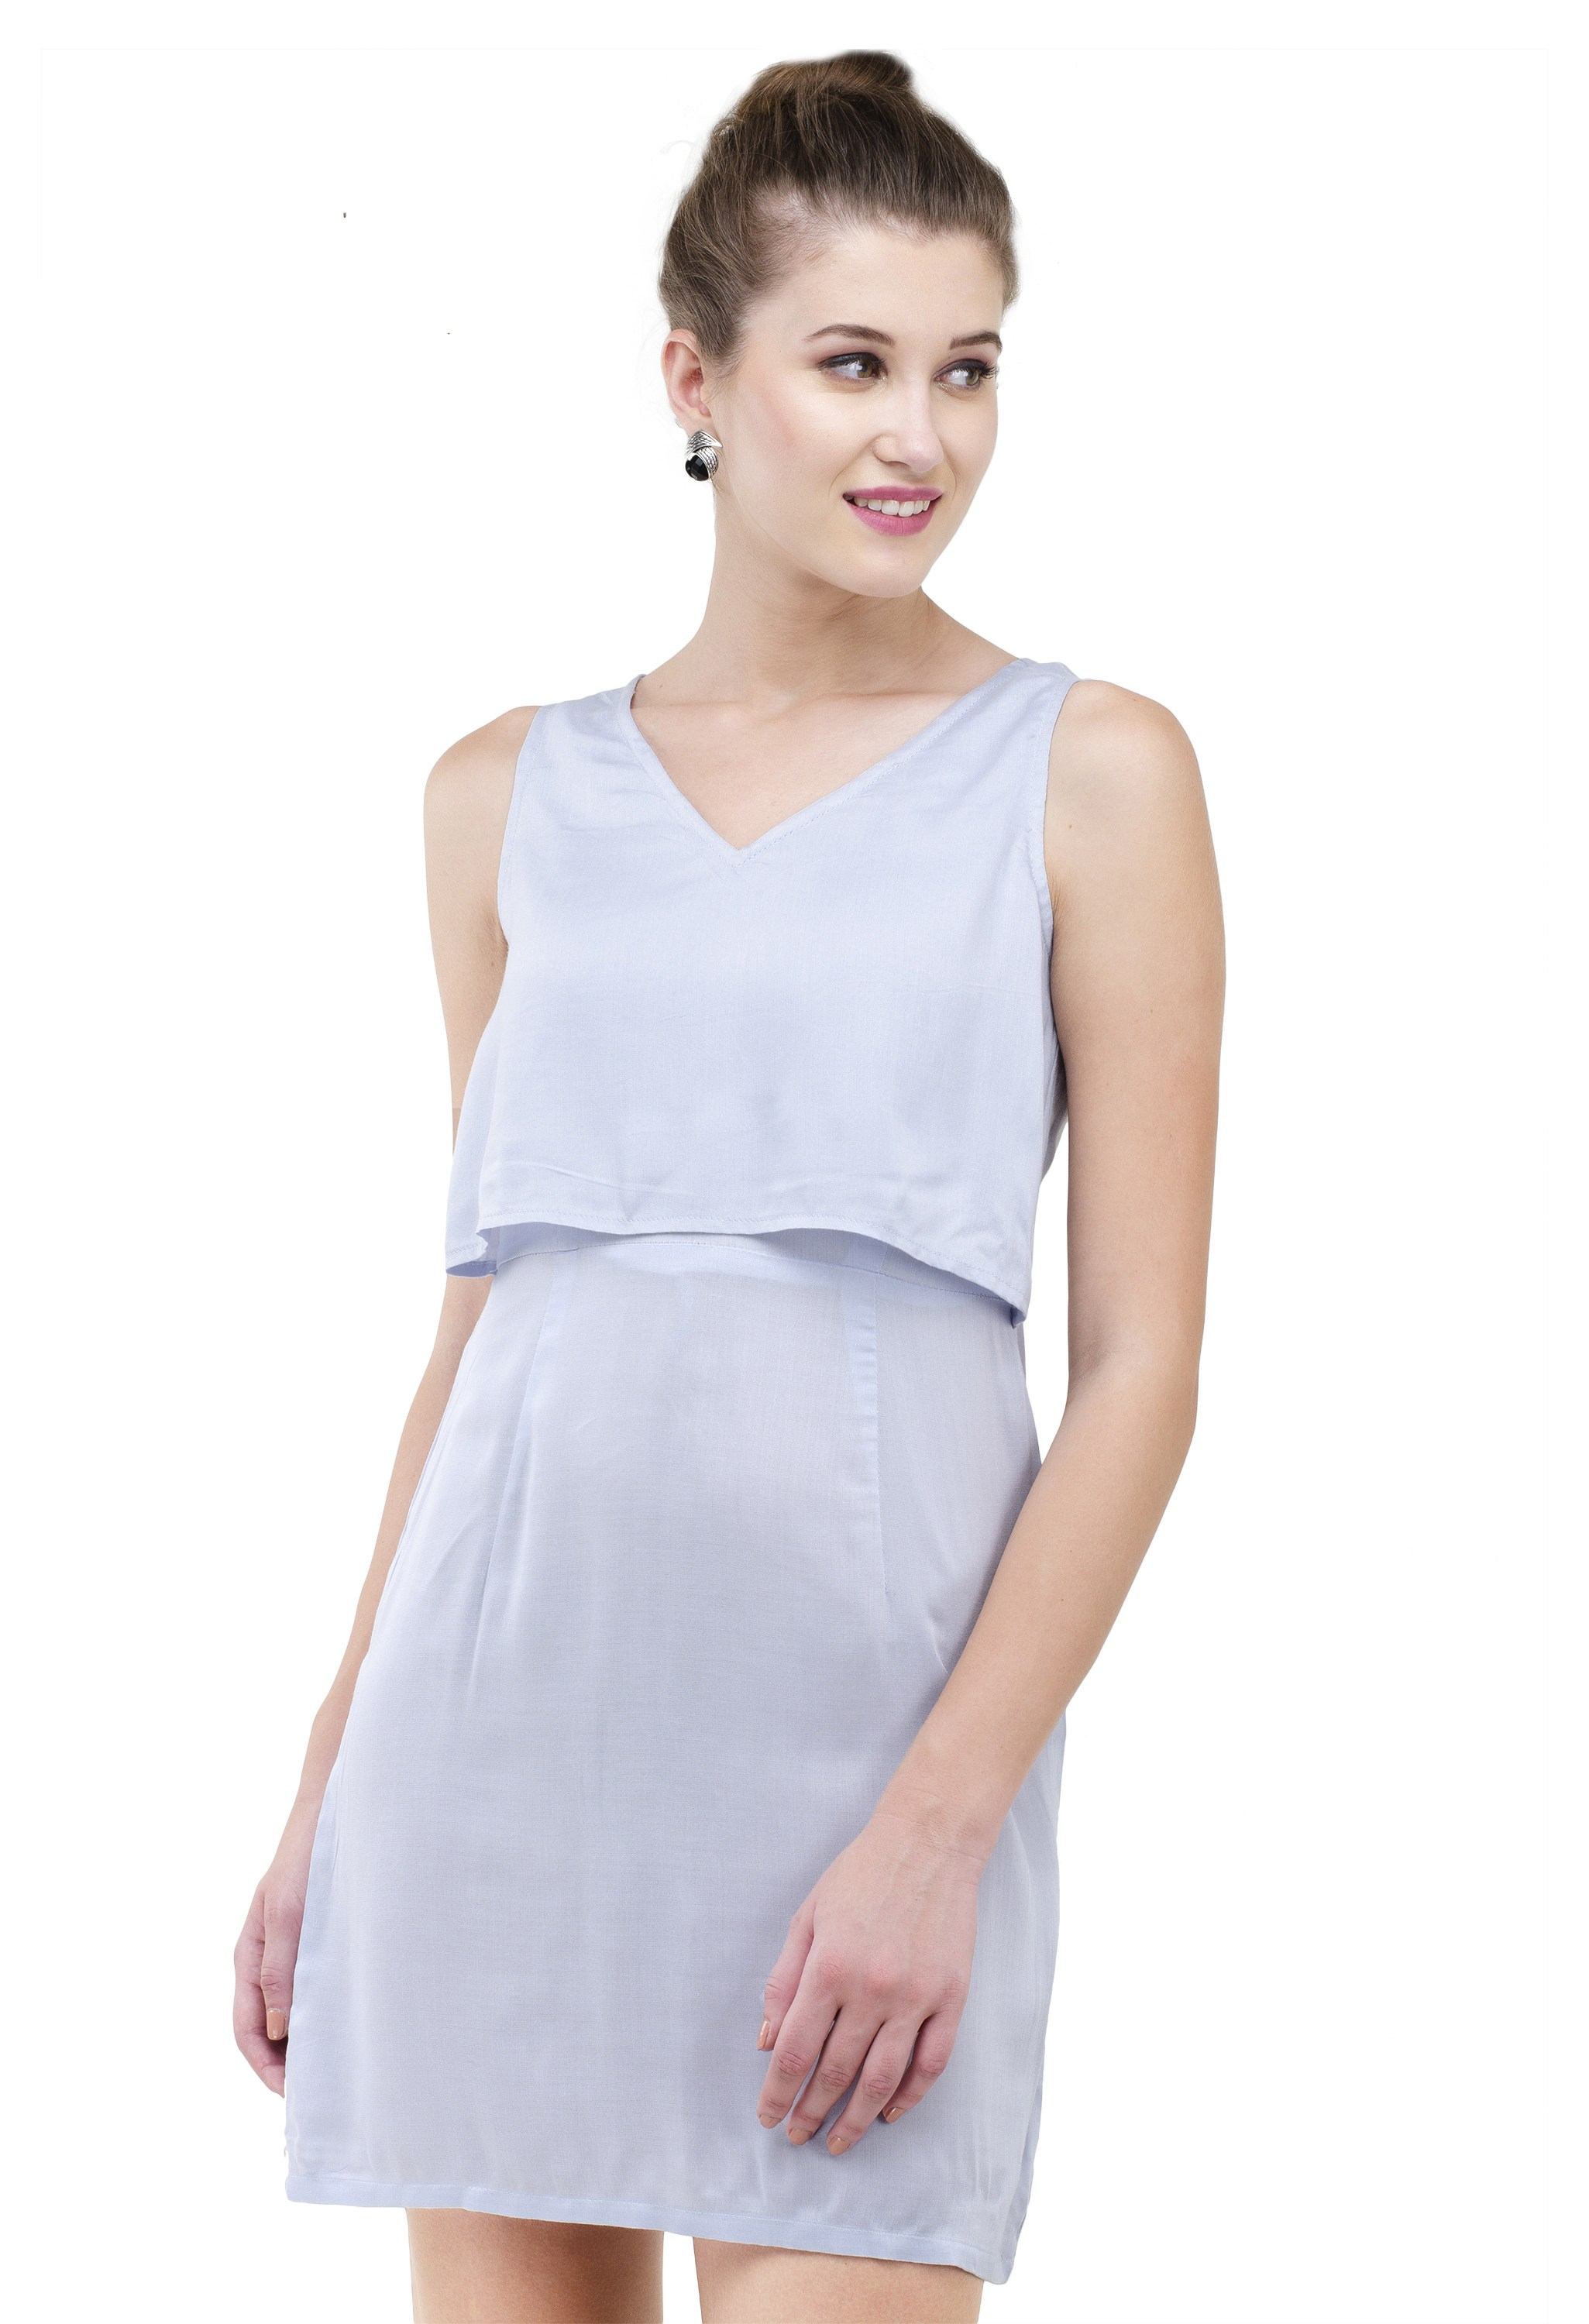 Short light blue dress from Grab Your Garb